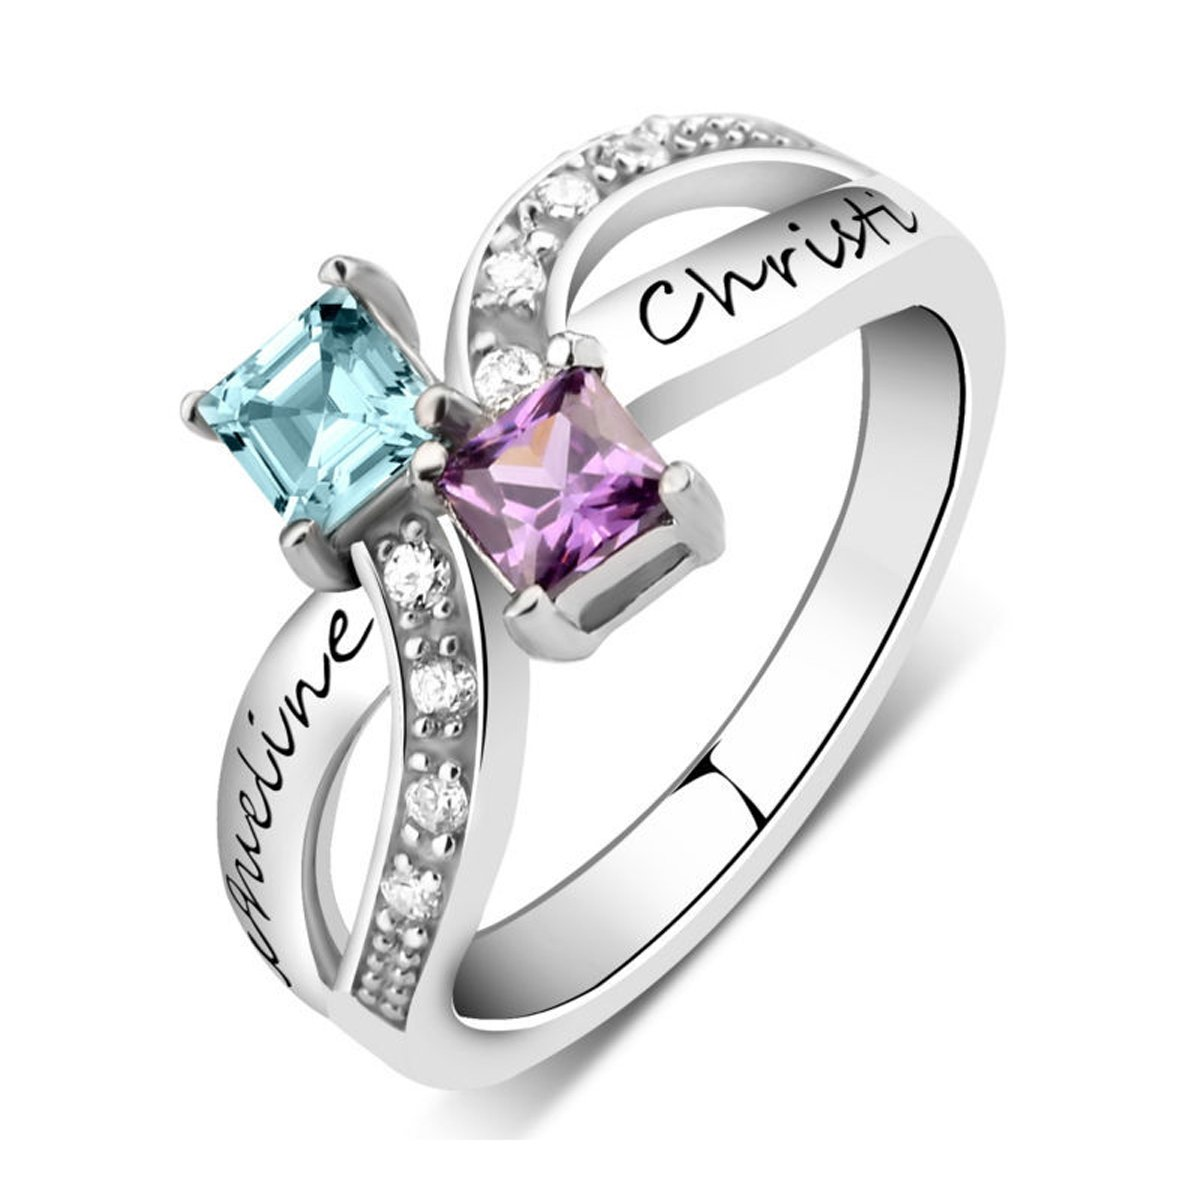 Quiges My Creation Sterling Silver 2 CZ Birthstone Personalised Engraved Name Double Twisted Stacking Custom Ring Size Various Sizes and Colors